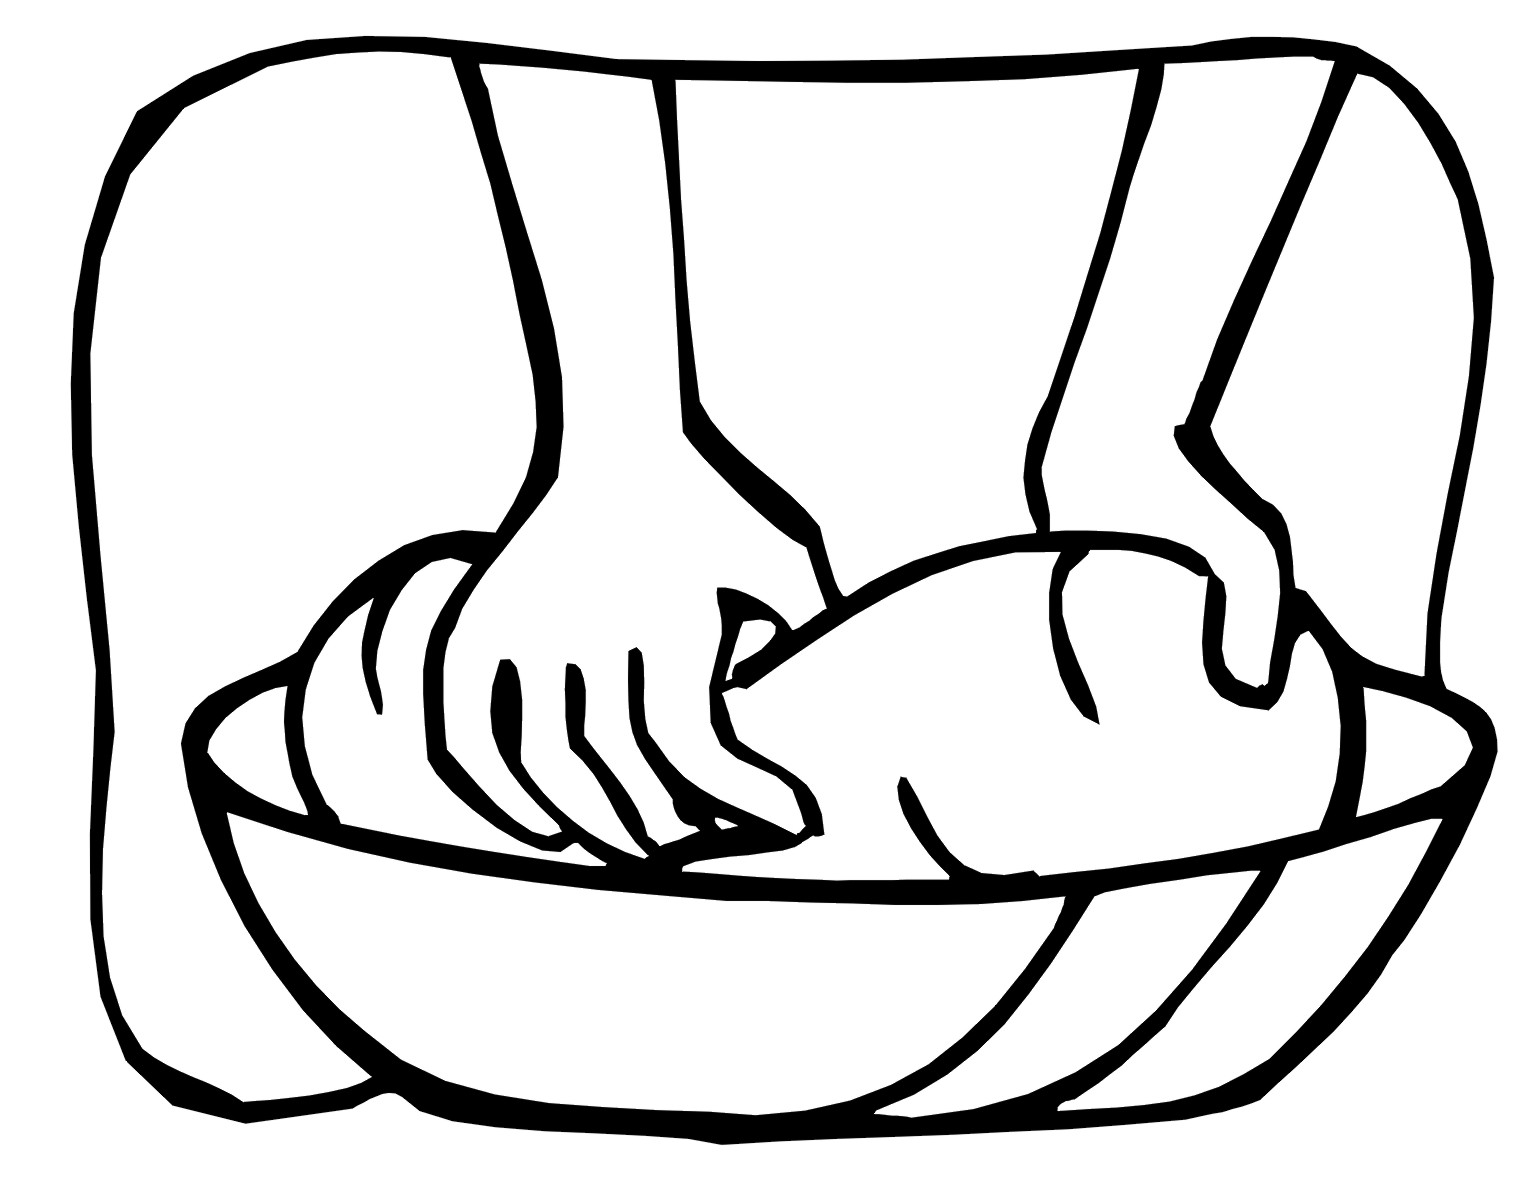 Bread clipart drawing. Line at getdrawings com